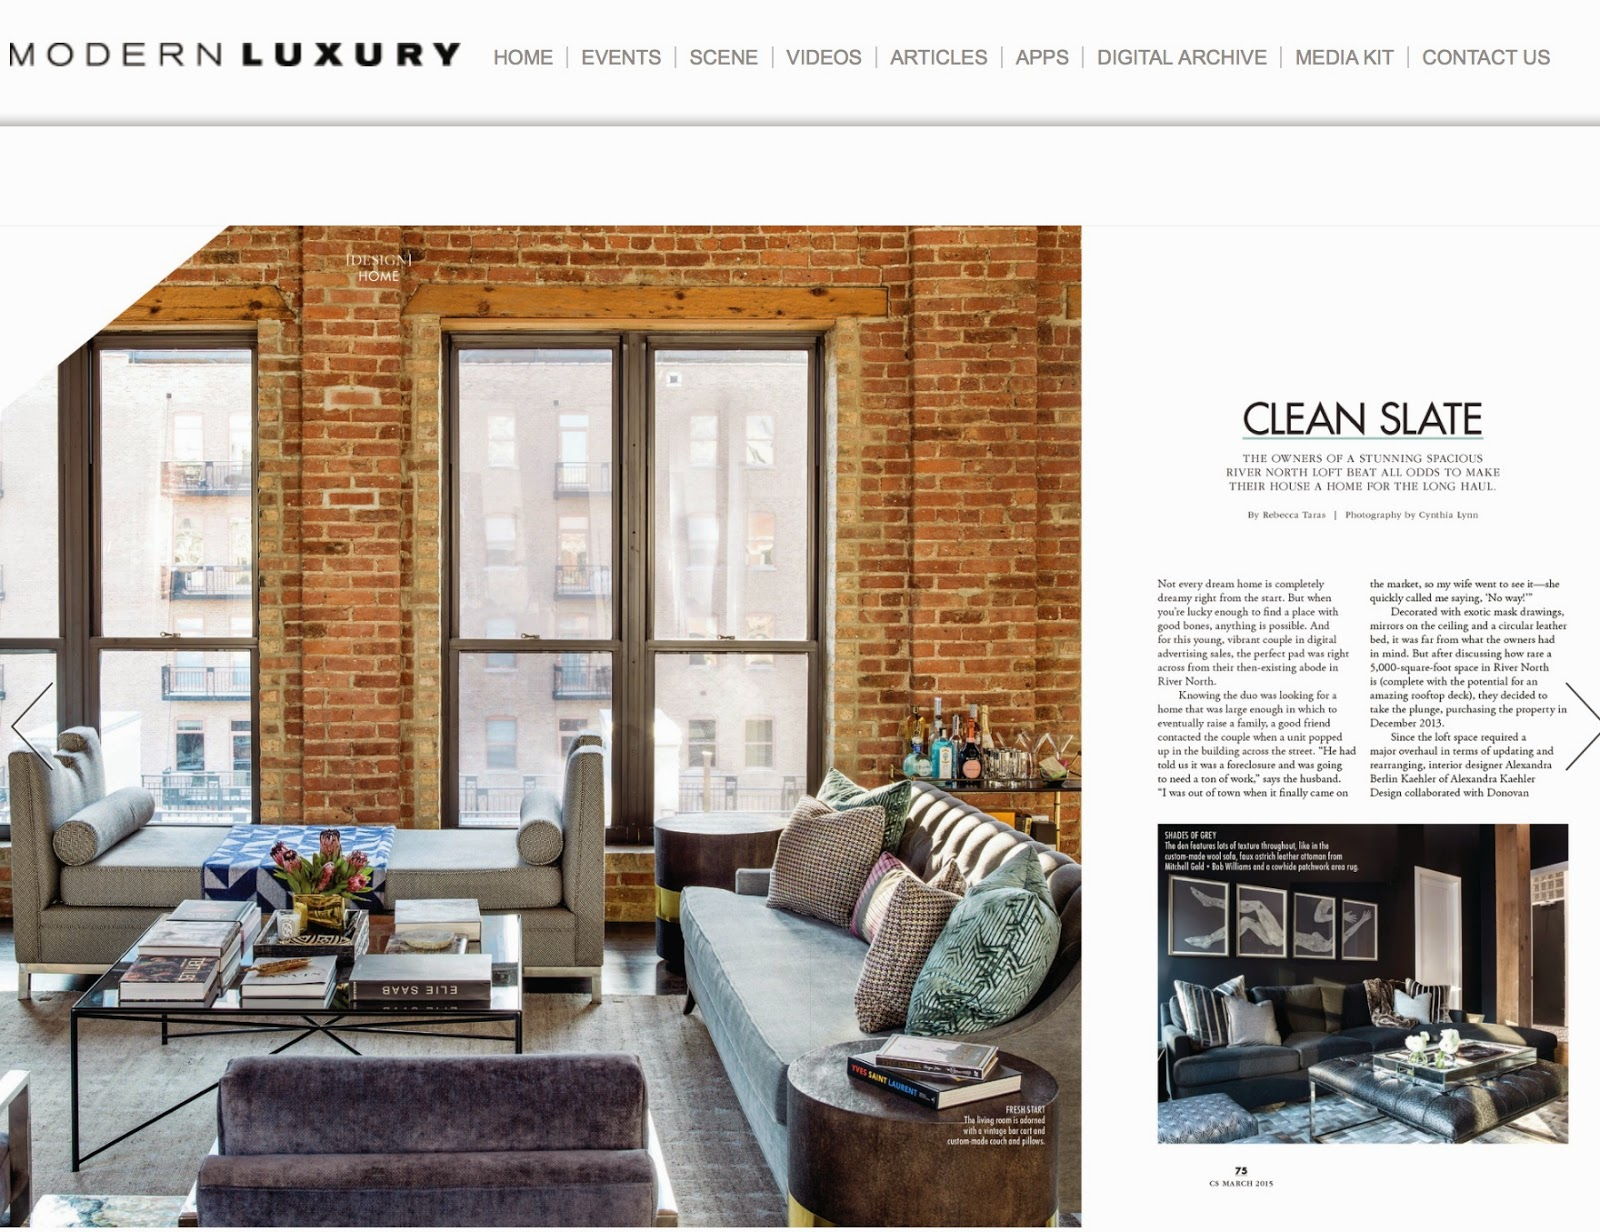 So Thrilled To Have Our Ida Daybed And Jaime Chairs Featured In CS Modern  Luxury. Designer Alexandra Kaehler Created An Amazing Space And We Are So  Happy To ...